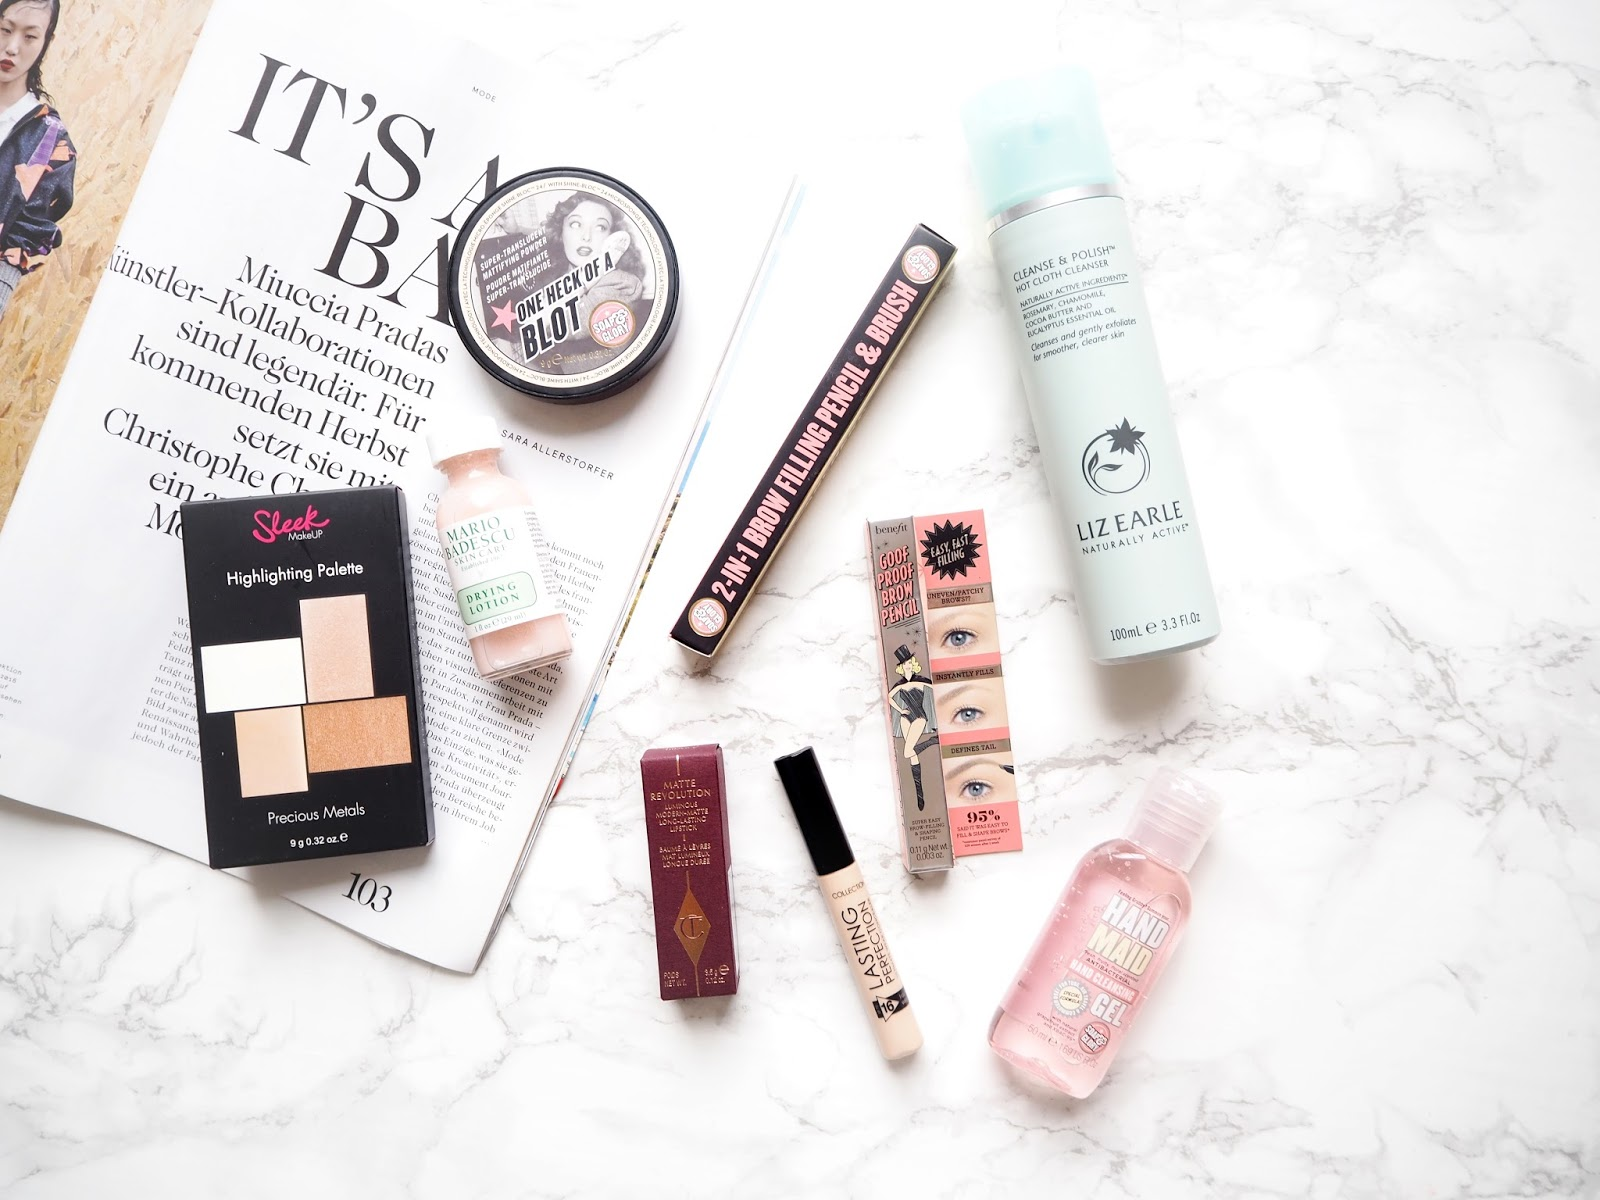 UK Beauty Haul, UK drugstore, makeup, beauty